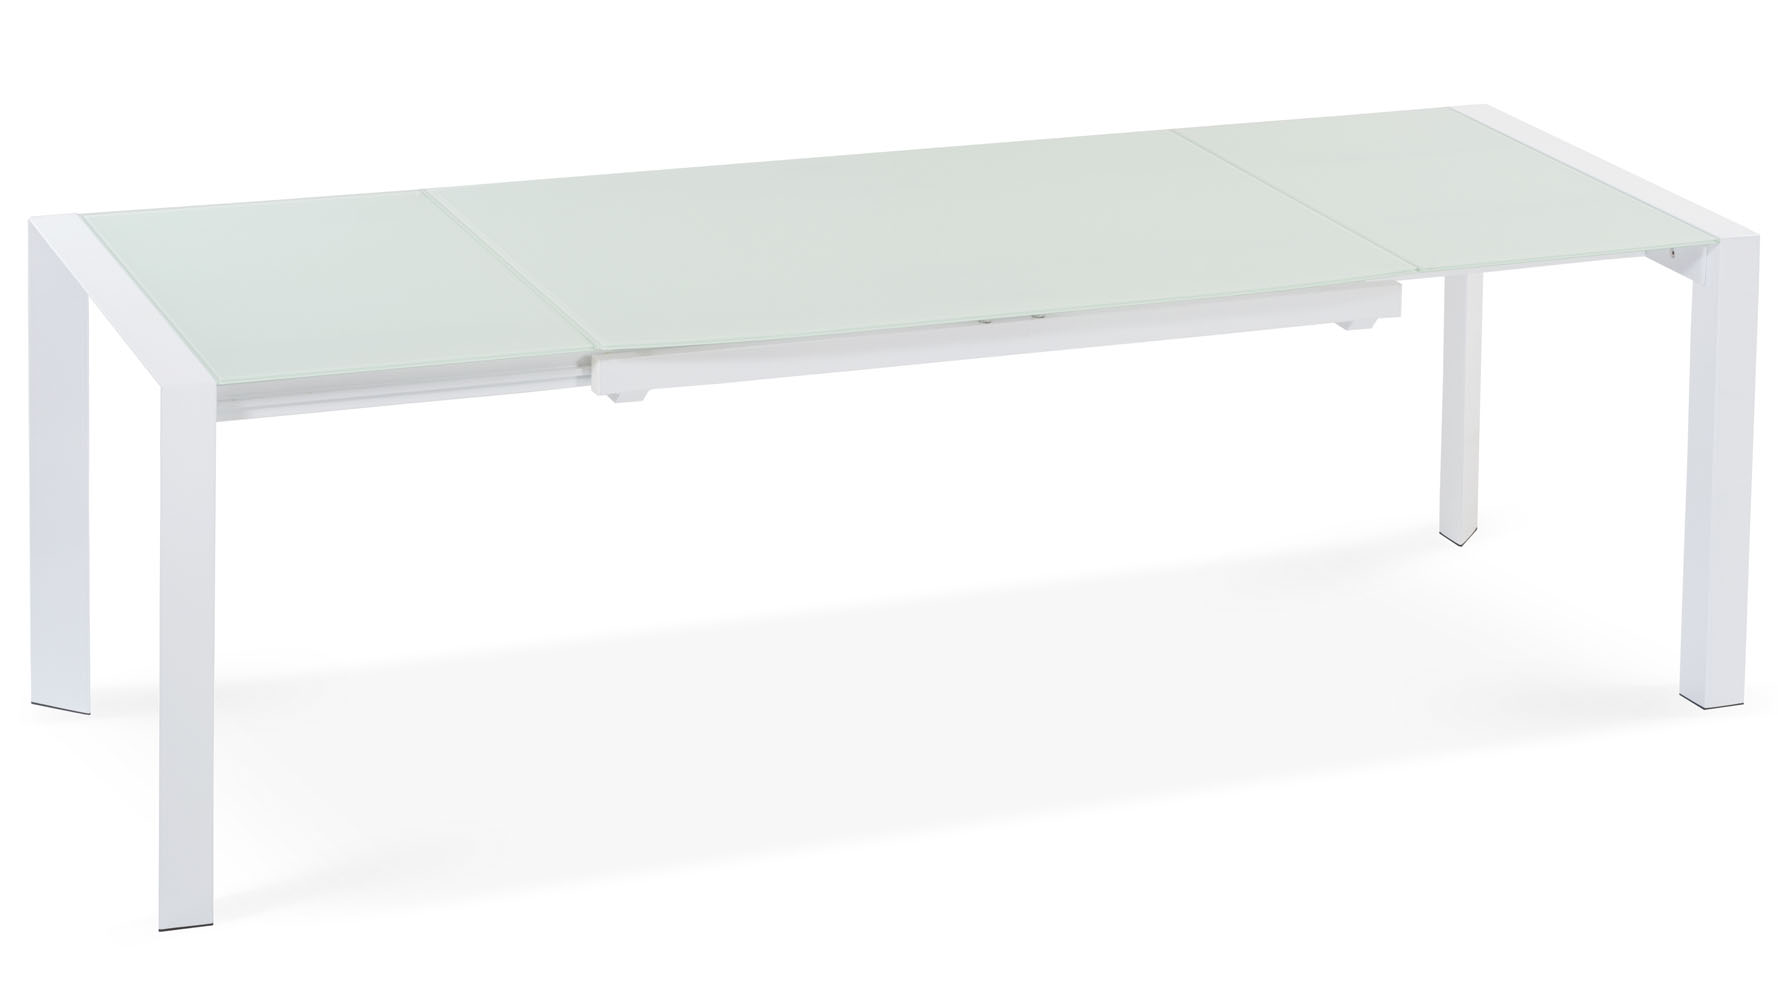 Alton extending modern dining table with white glass top - White table with glass top ...